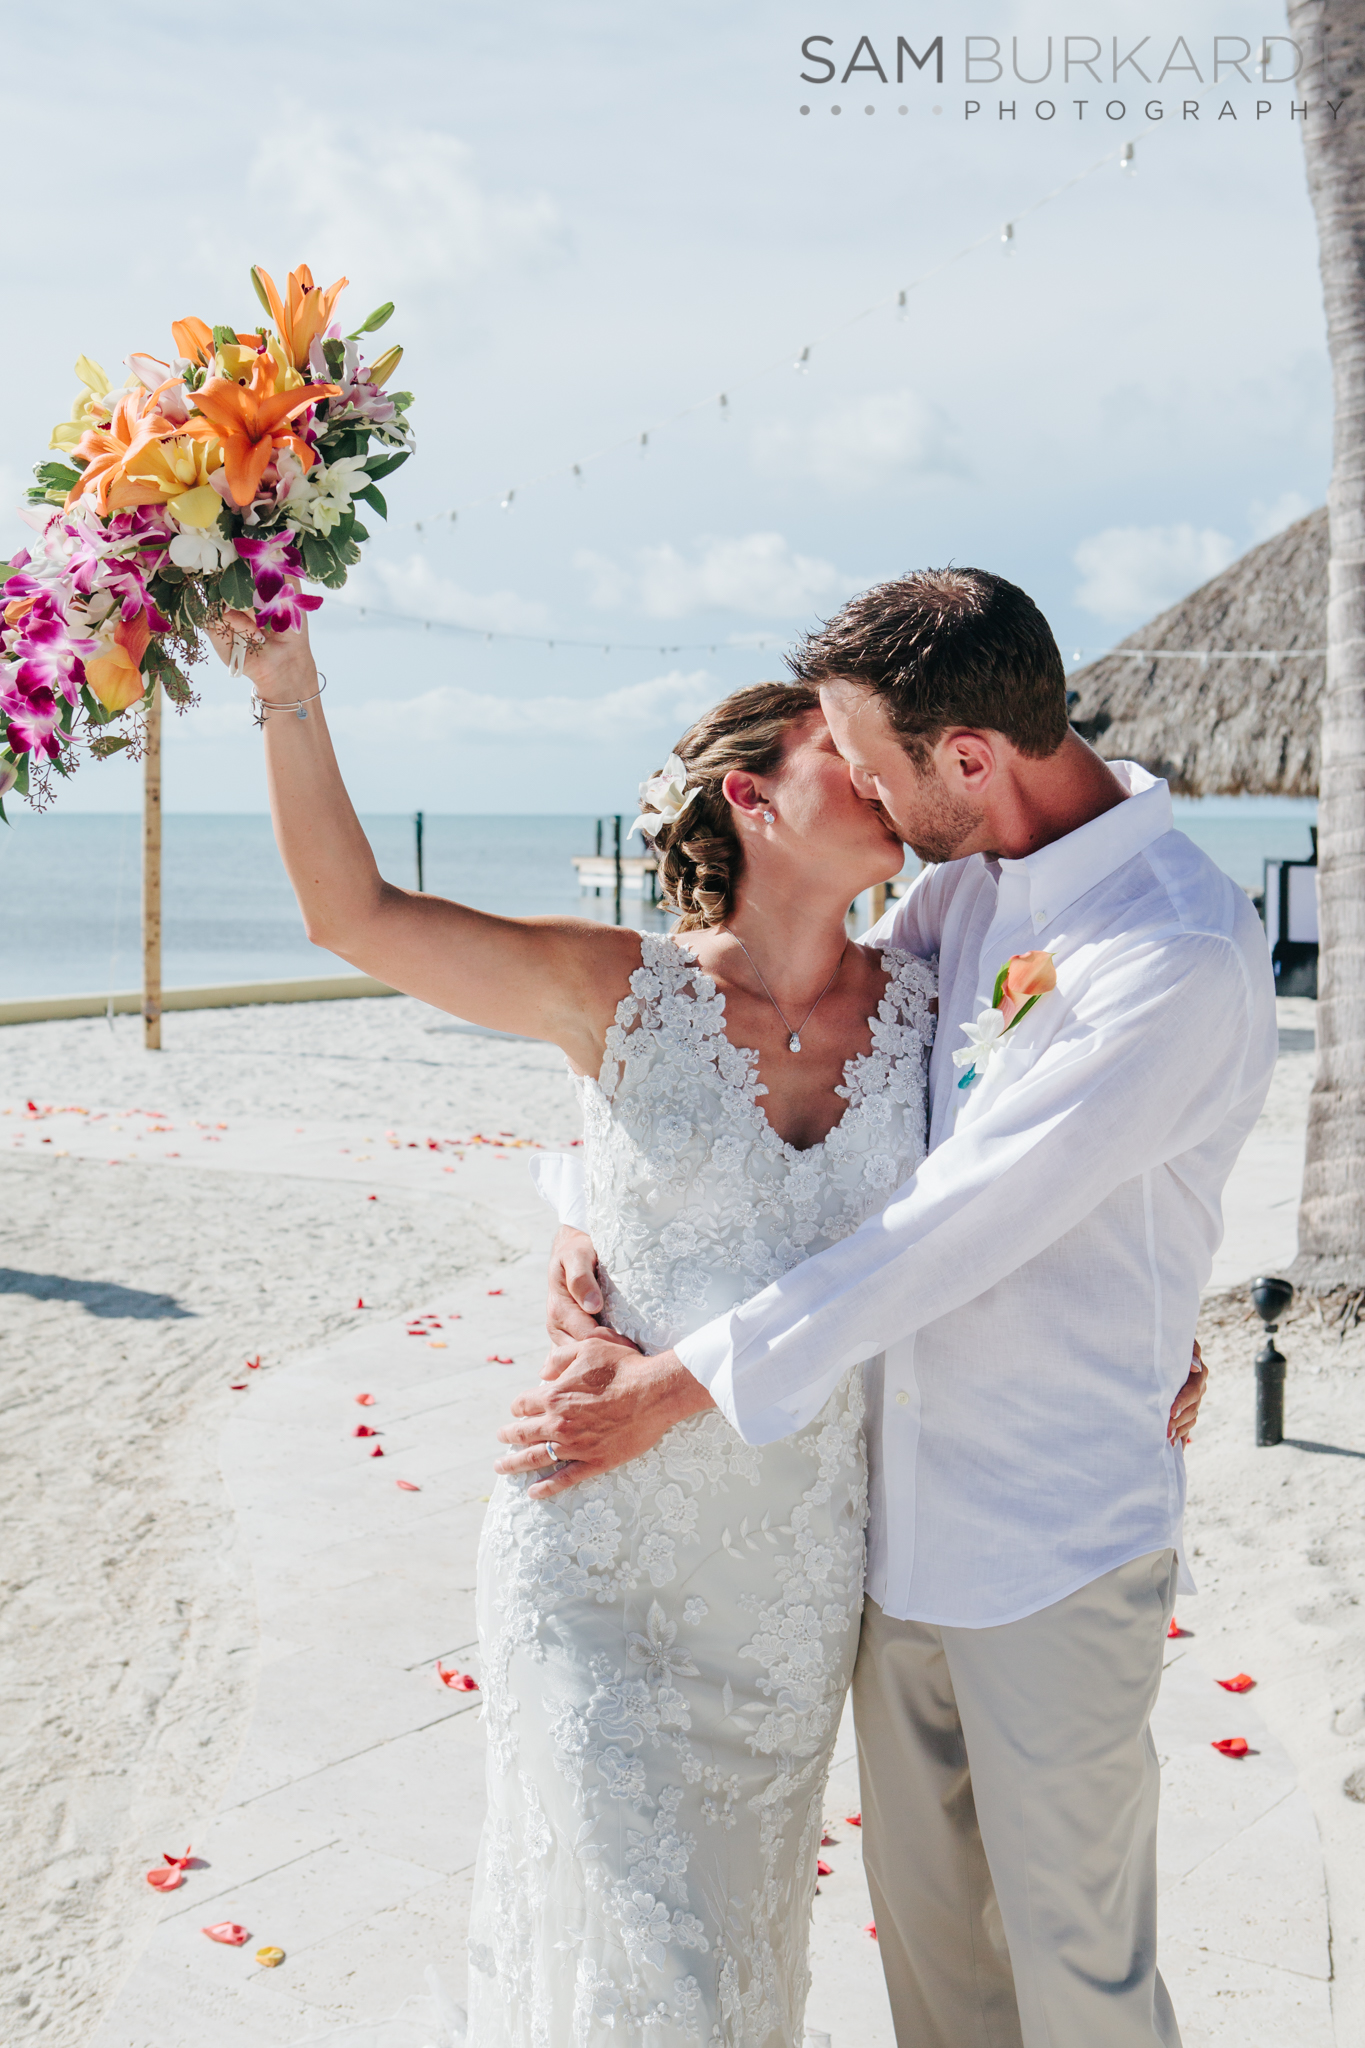 samburkardt_key_west_wedding_marathon_florida_summer_beach_ocean_front_0036.jpg